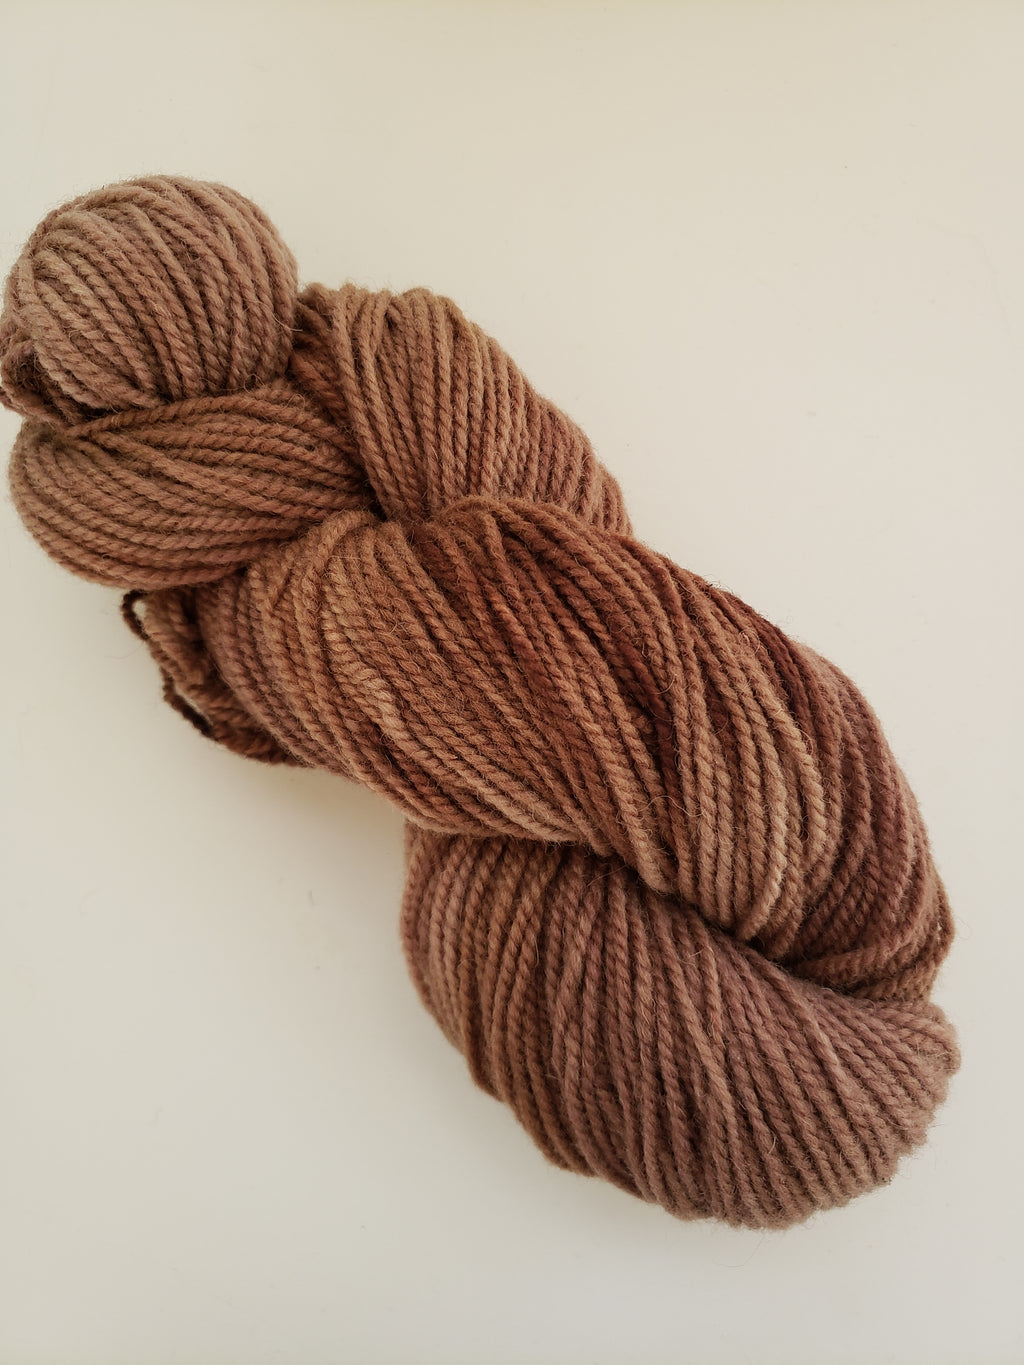 HOT COCOA-  Hand Dyed Shades of Brown Worsted Yarn for Rug Hooking - RSS258